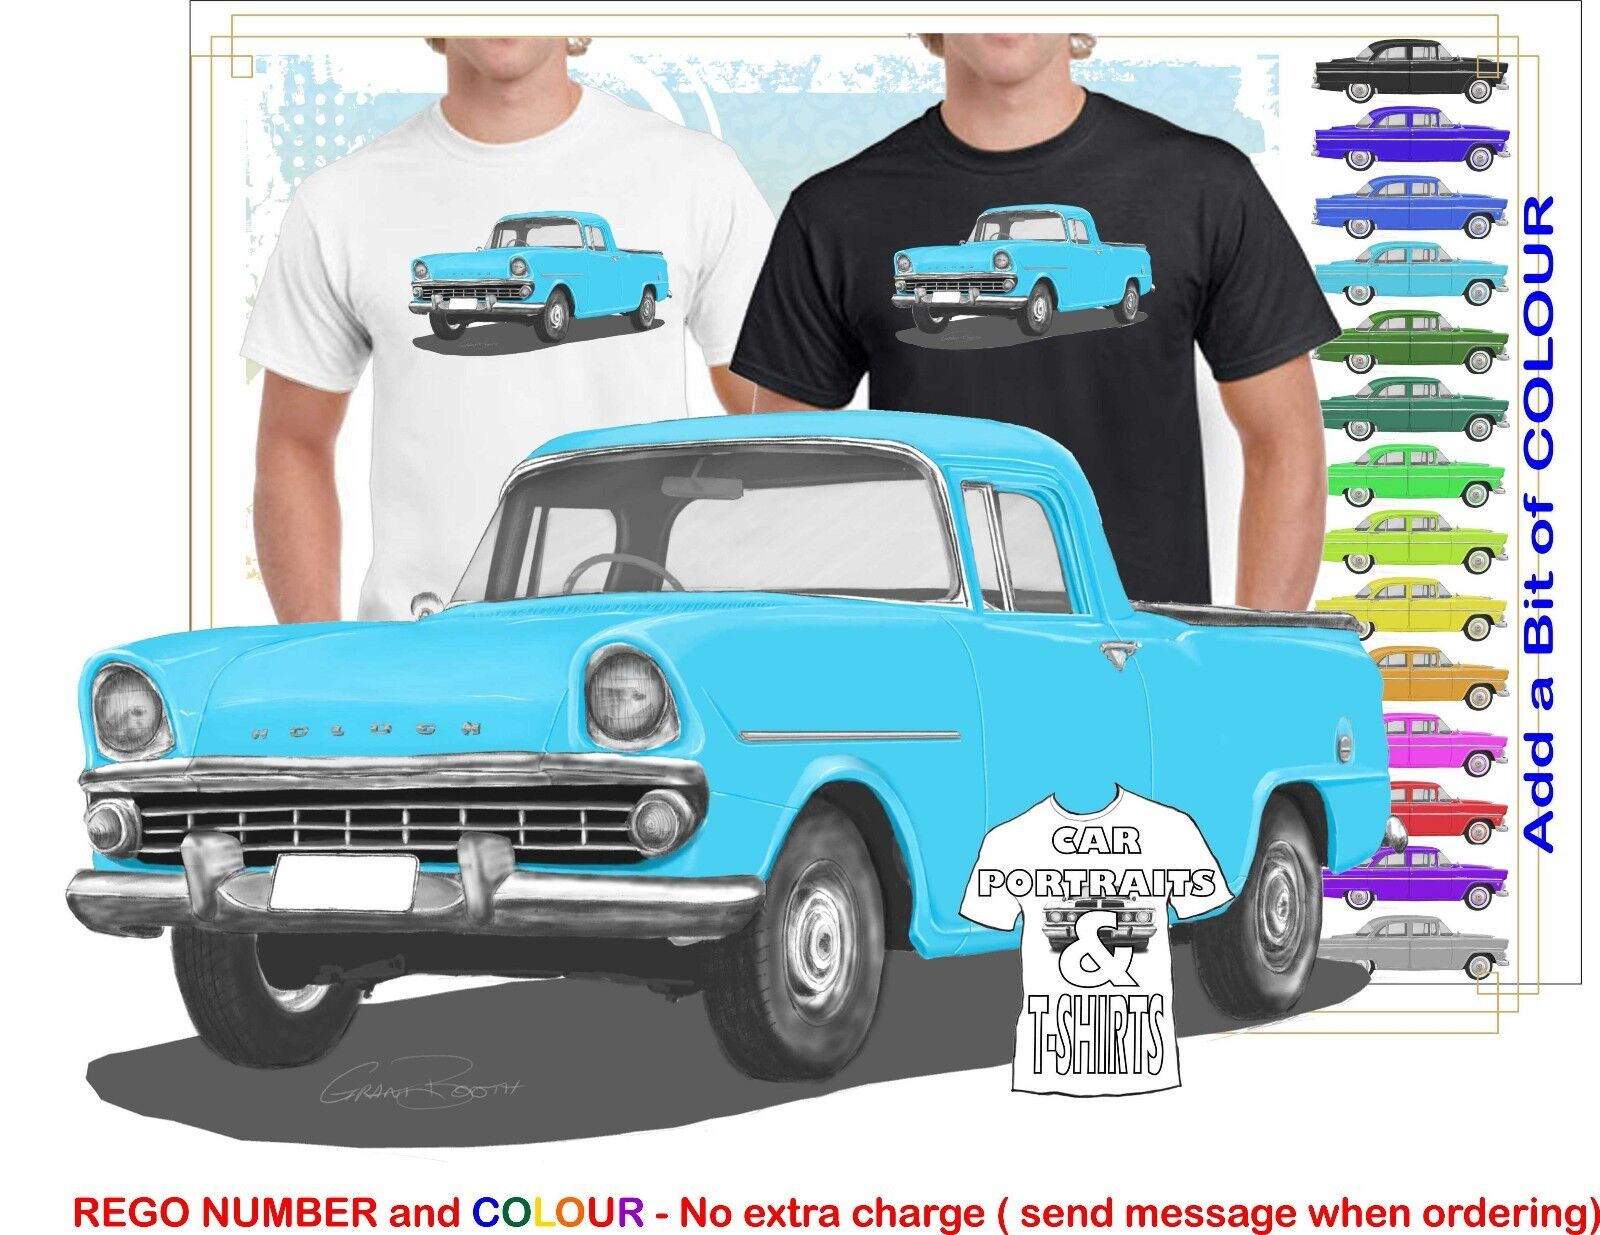 CLASSIC 60-61 FB HOLDEN UTE ILLUSTRATED T-SHIRT MUSCLE RETRO SPORTS